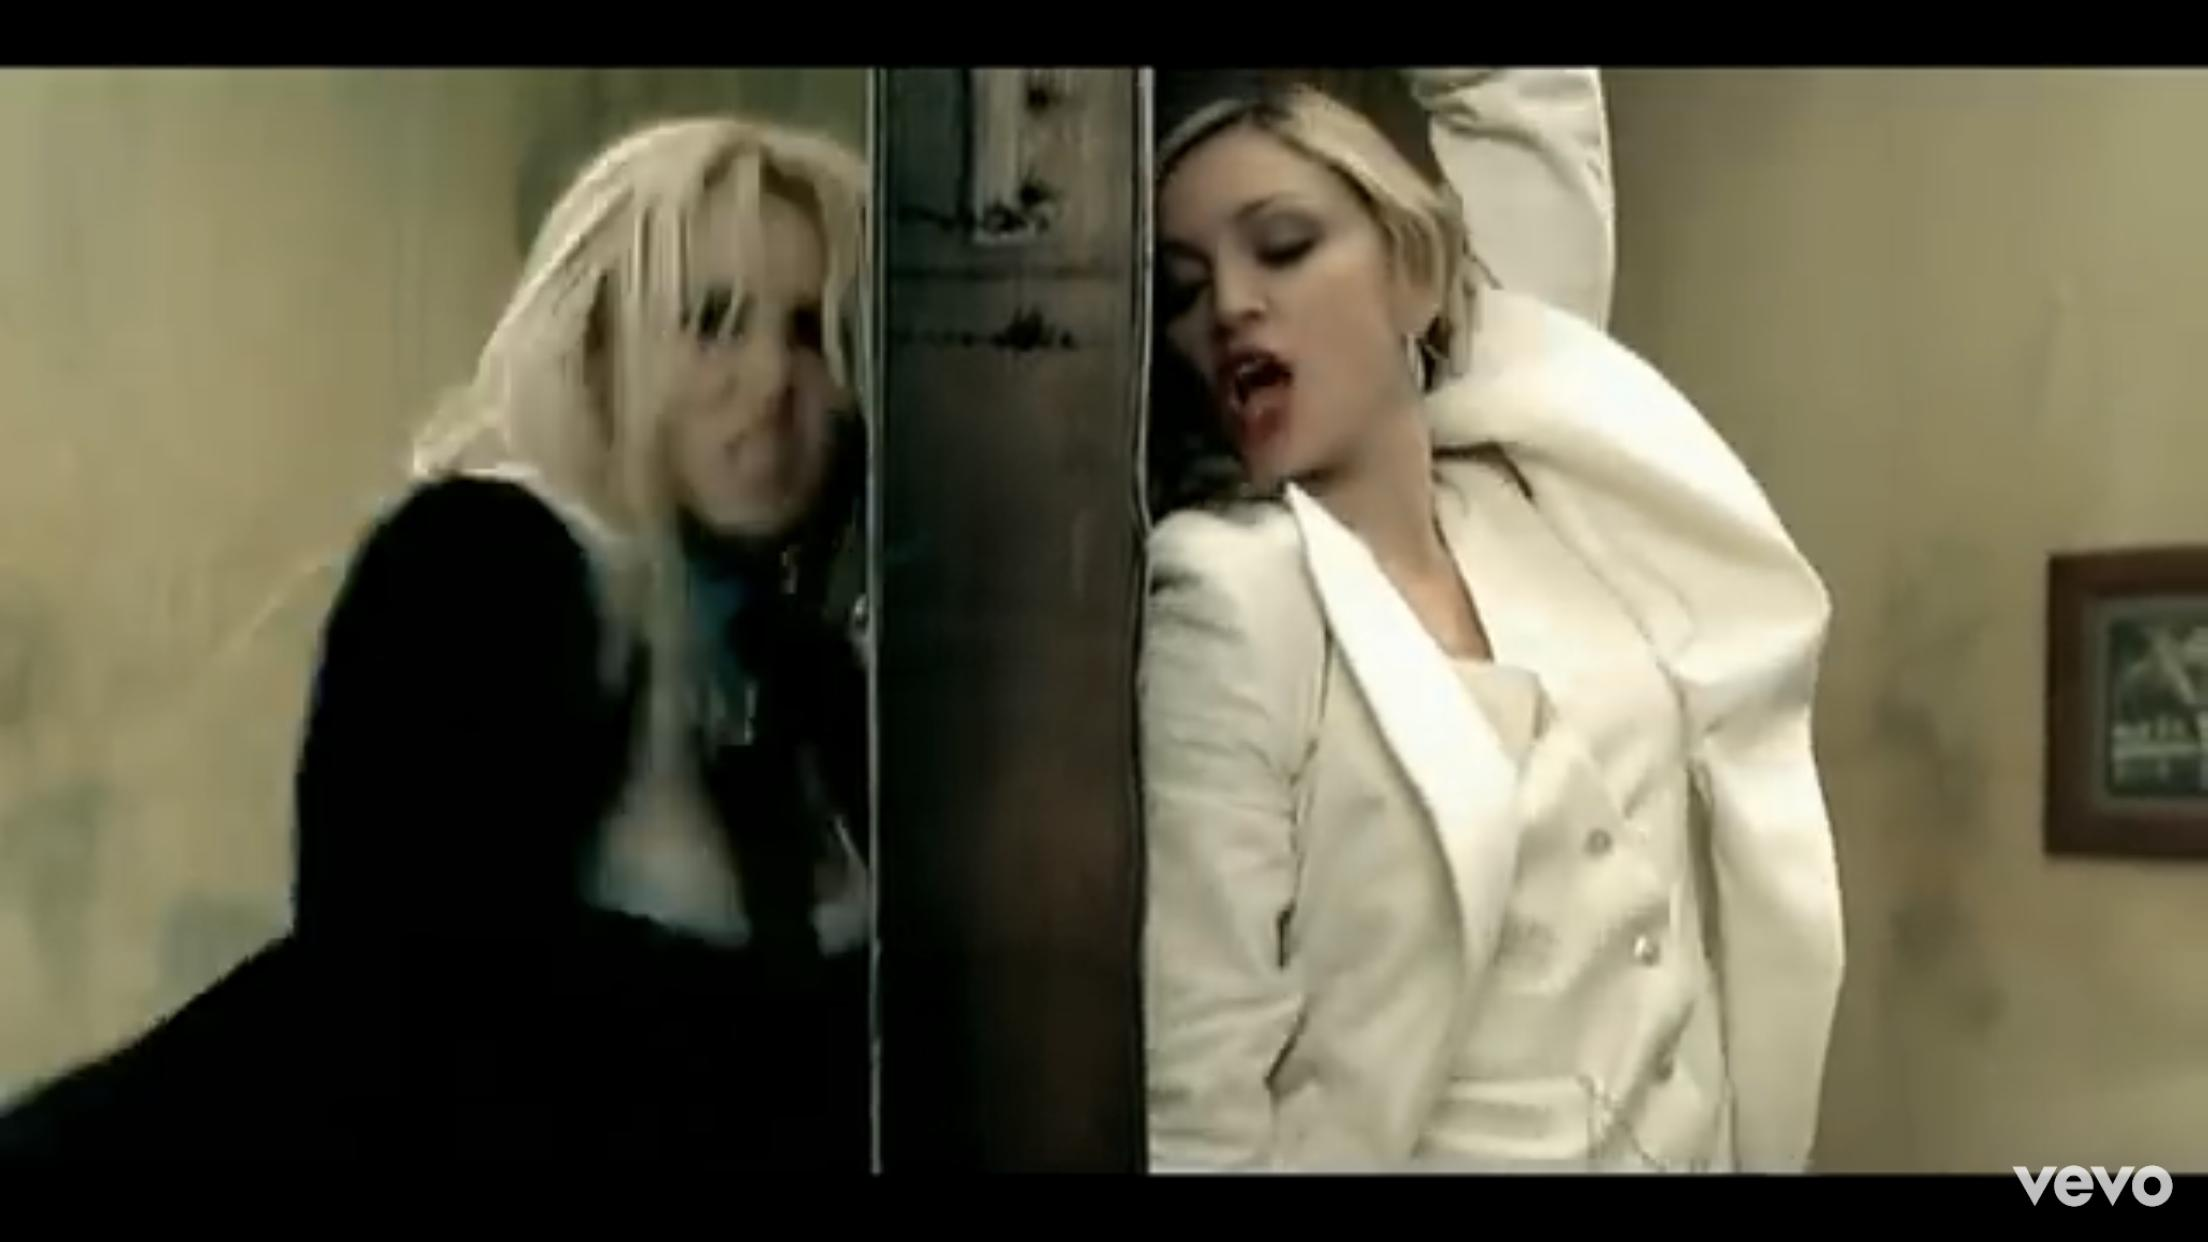 Britney Spears Feat. Madonna: Me Against the Music (2003)